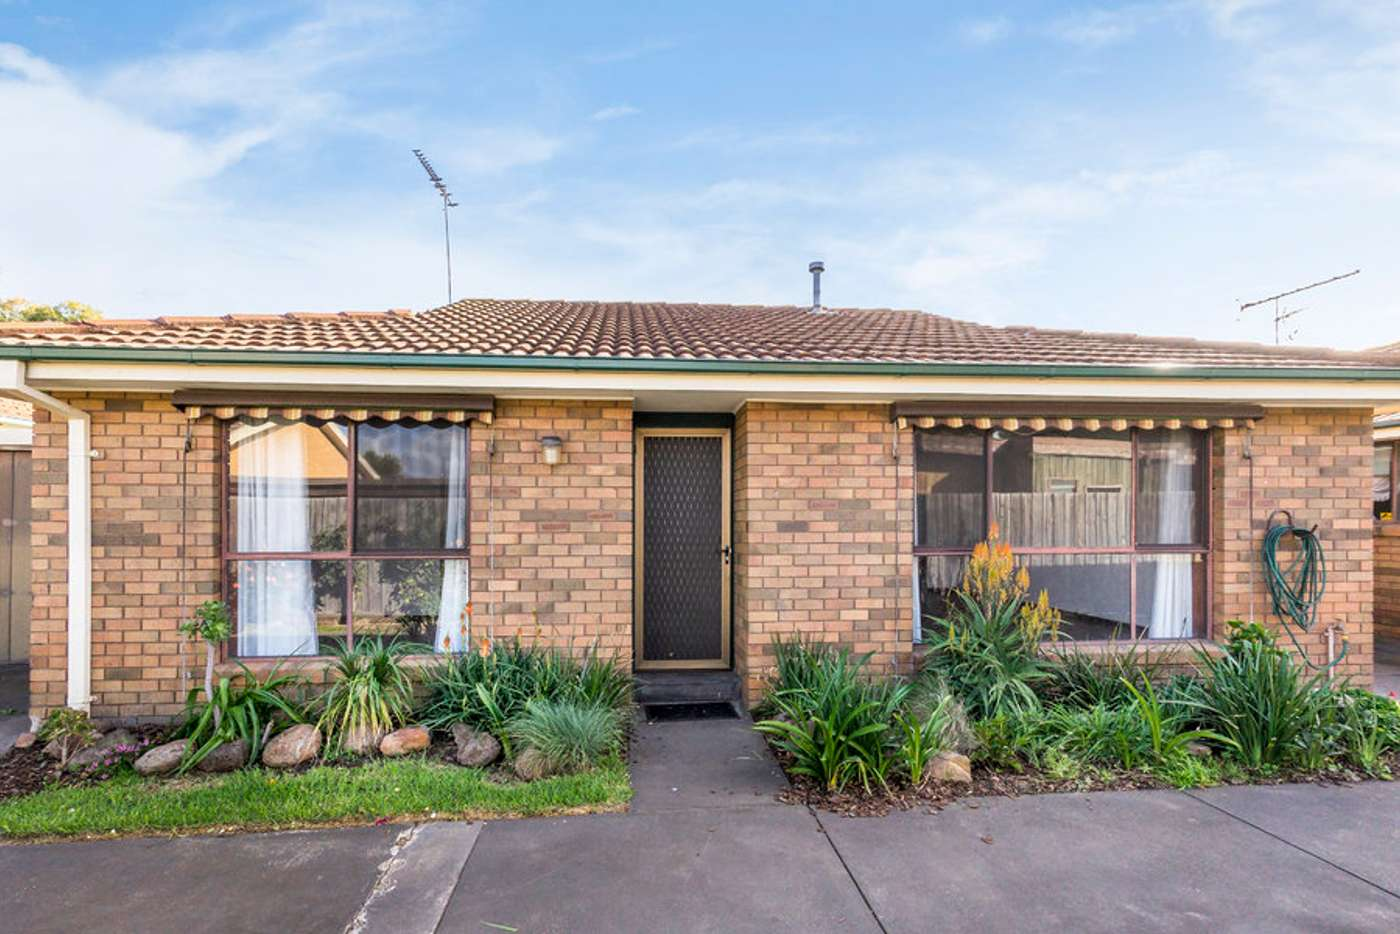 Main view of Homely unit listing, 5/16 Simpson Street, Bacchus Marsh VIC 3340